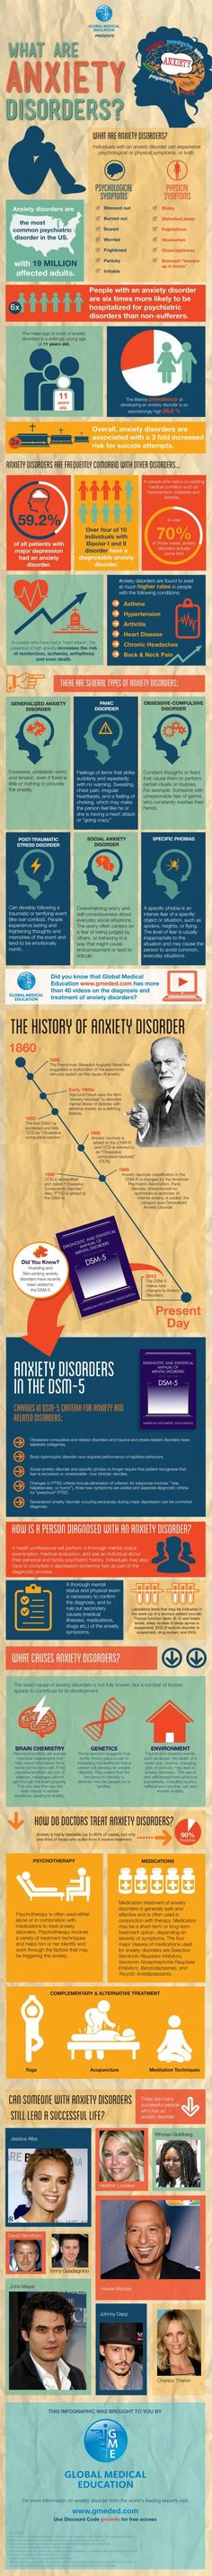 What Are Anxiety Disorders? | NerdGraph Infographics